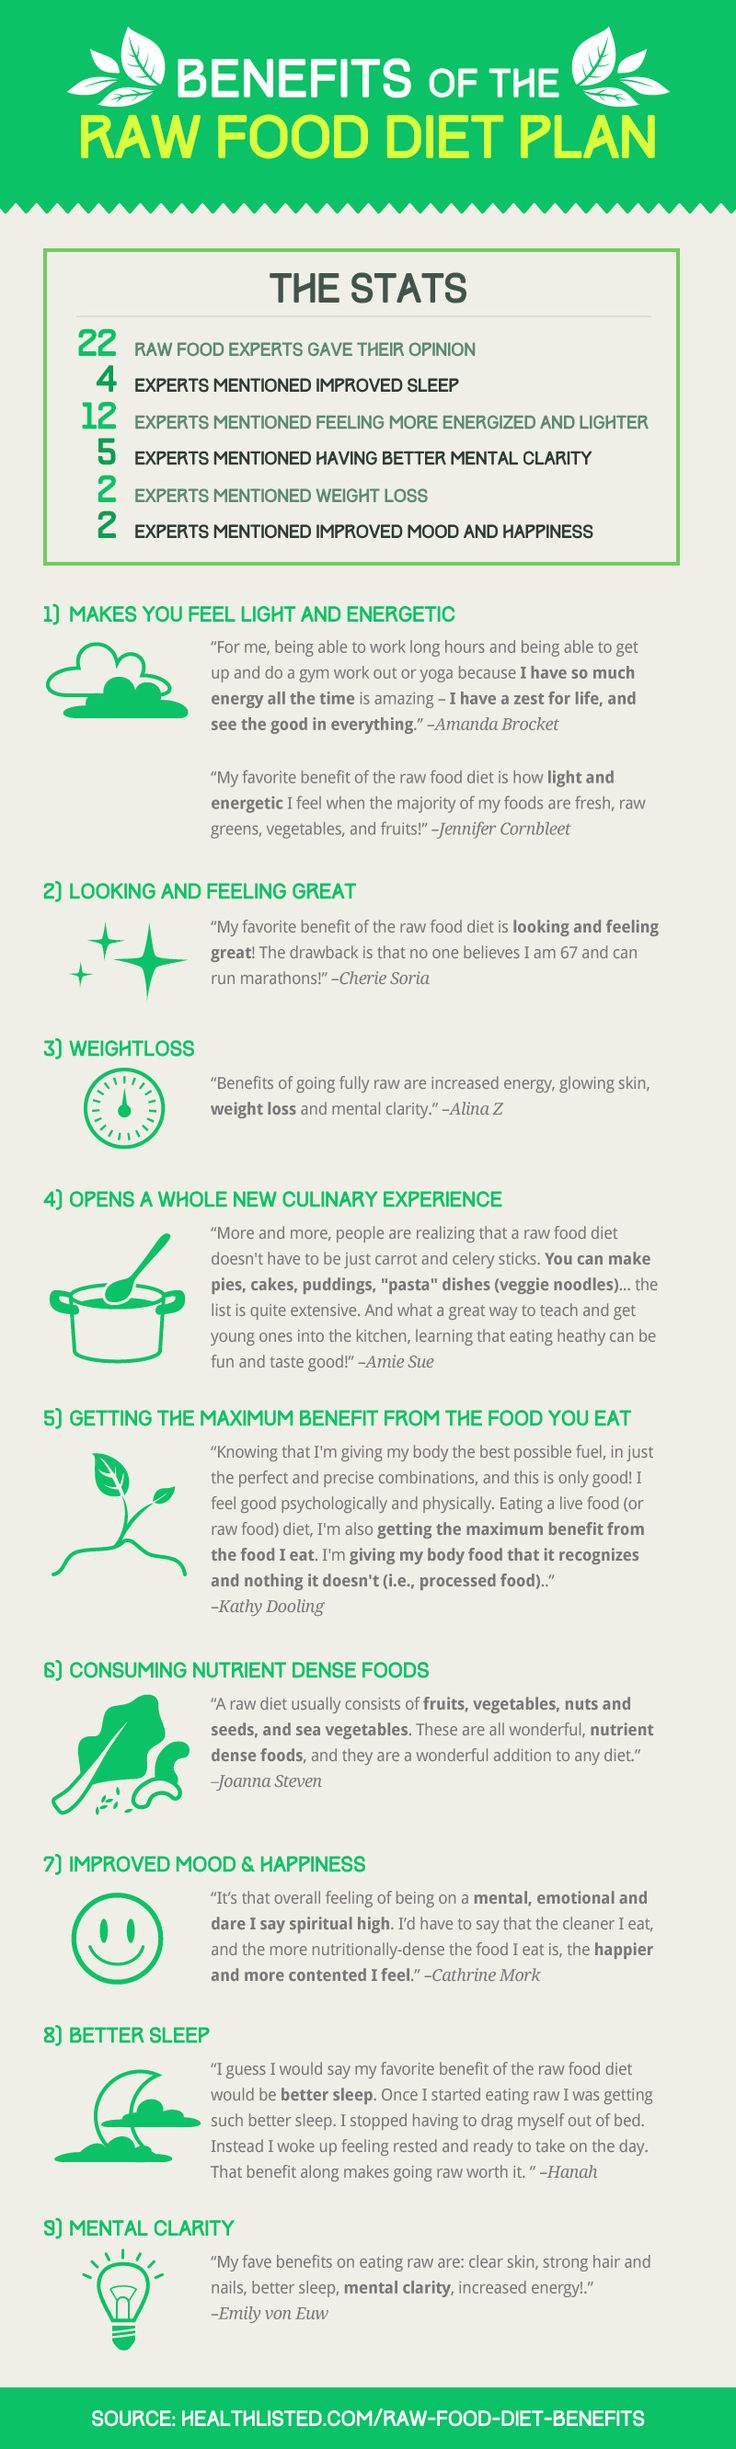 Benefits of the Raw Food Diet Plan